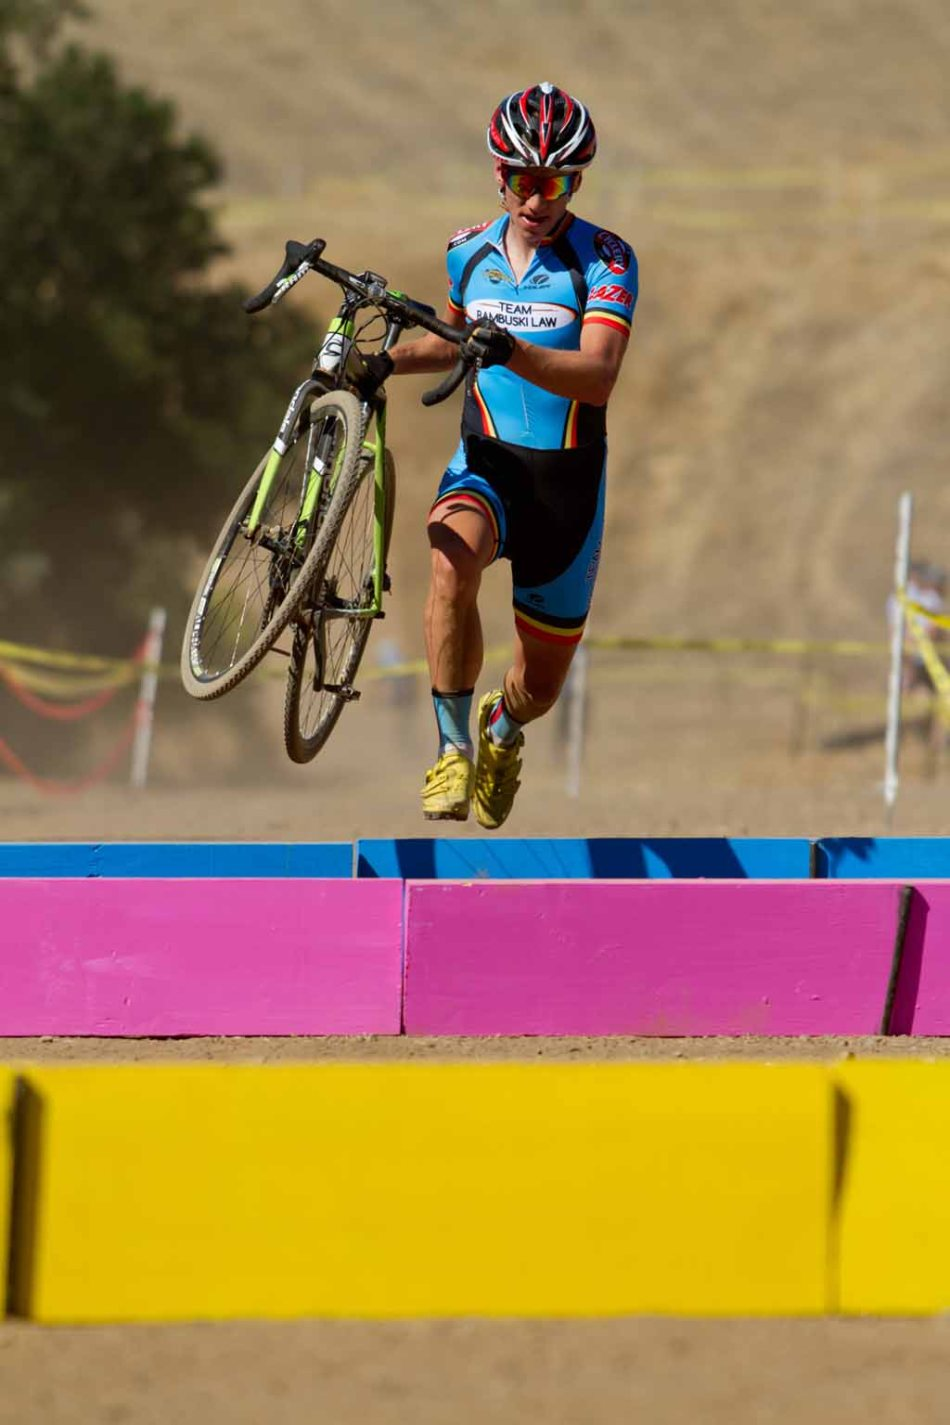 Team Rambuski Law Racer Keith Hillier and the Painted Plank-Barriers at San Jose Cougar (NCCX/SuprePro Racing)